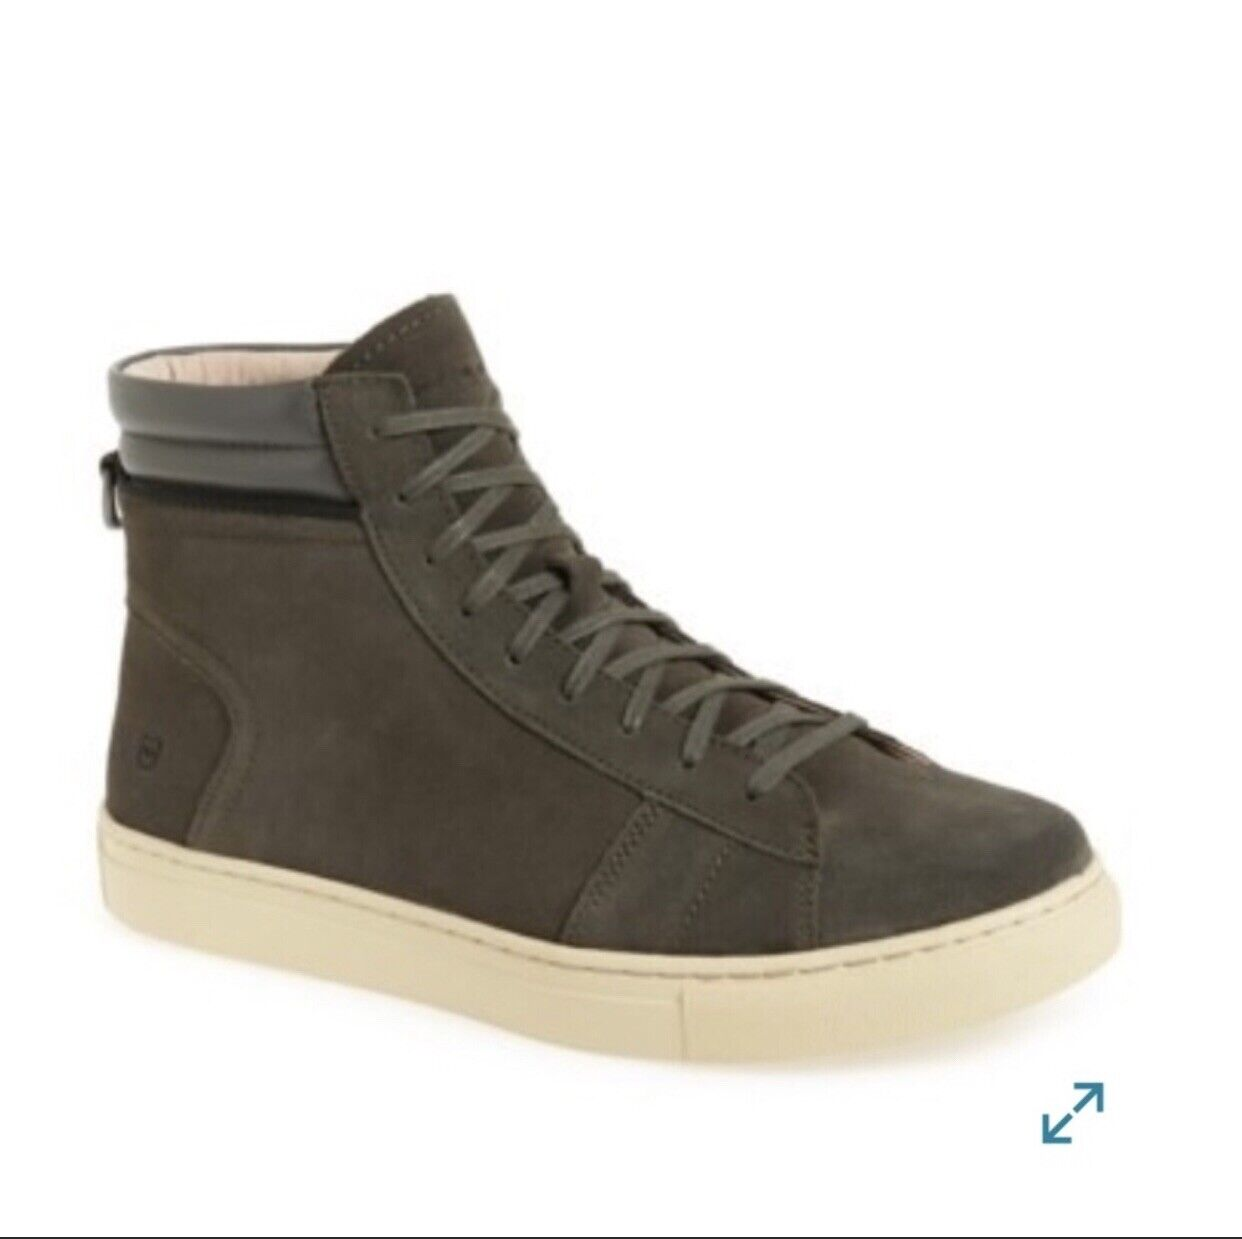 Andrew Marc Mens shoes AMREMNZS 2351 Suede Fashion Sneakers Brown Green Size 7.5